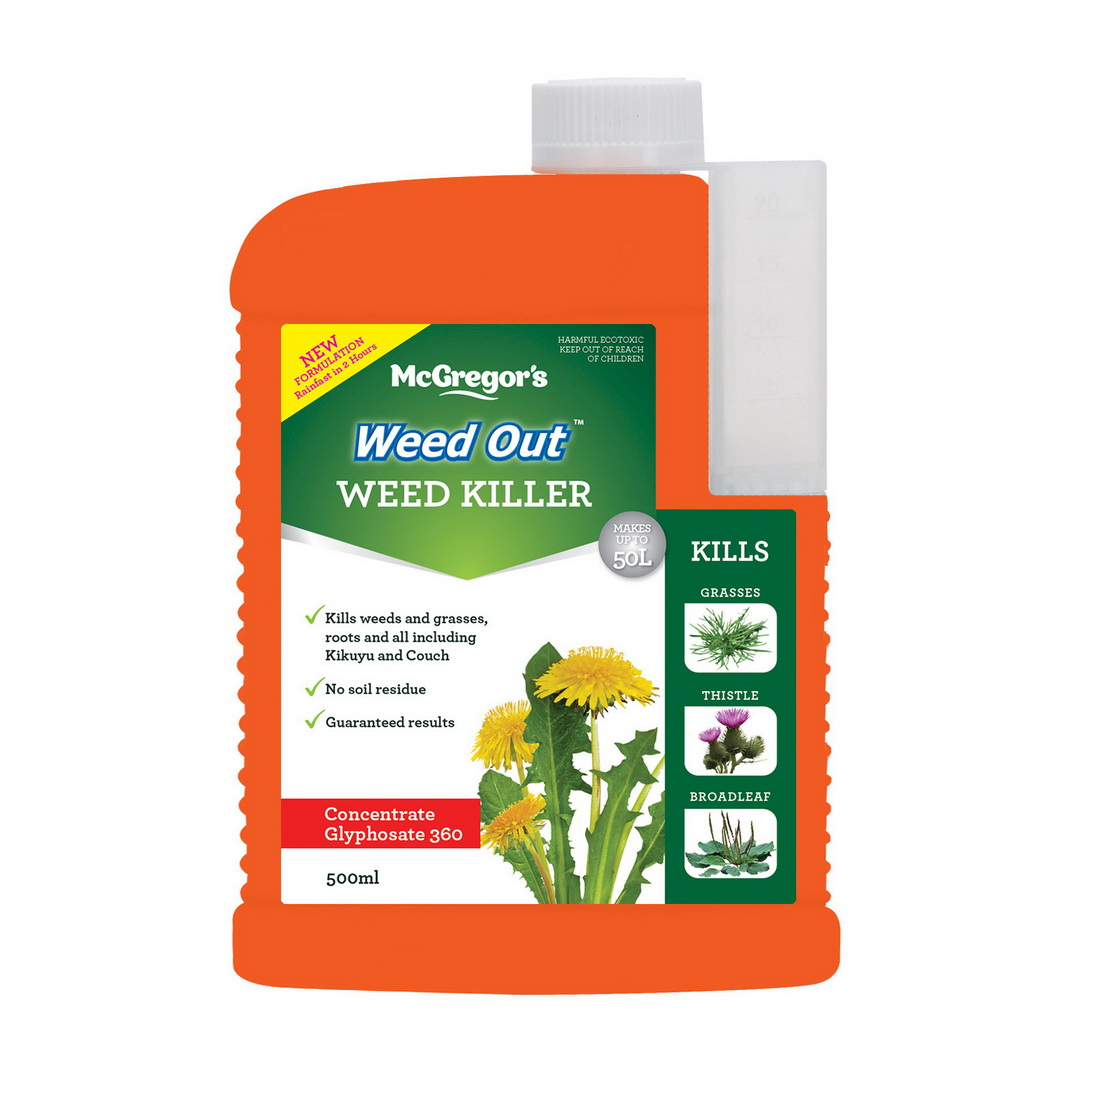 Weed Out 500mL Weed Killer